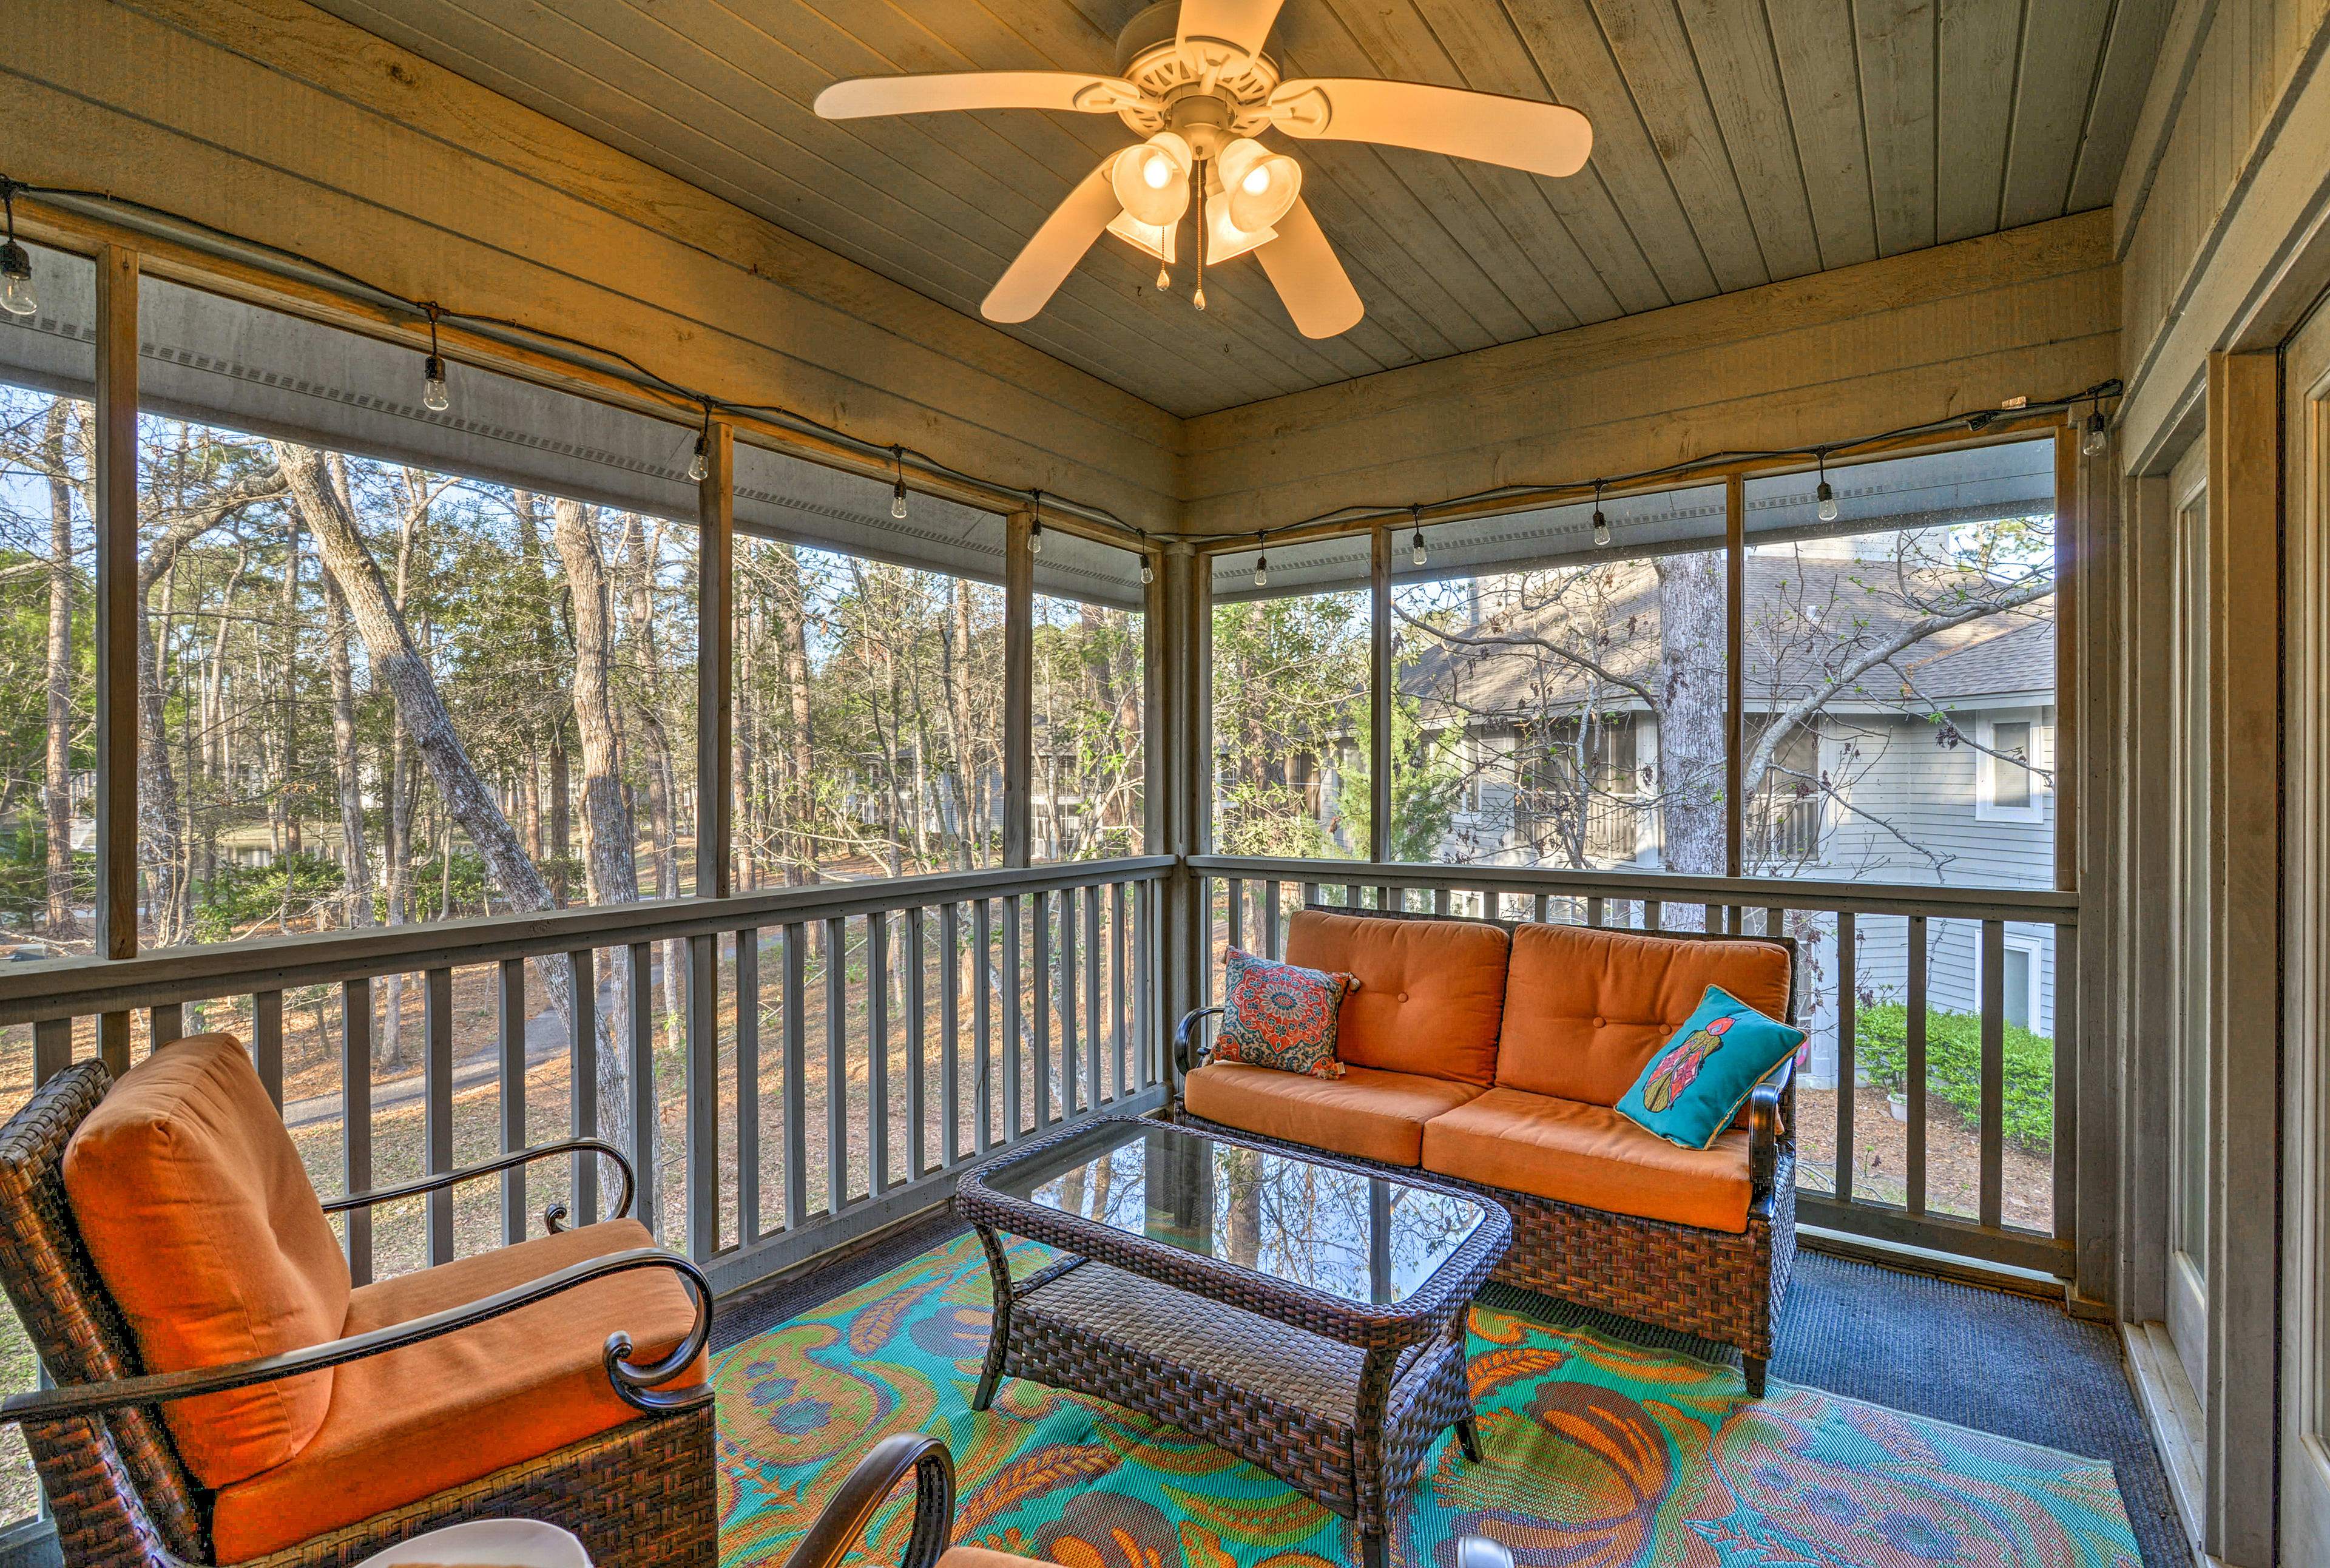 The North Myrtle Beach vacation rental has everything you need for your holiday.